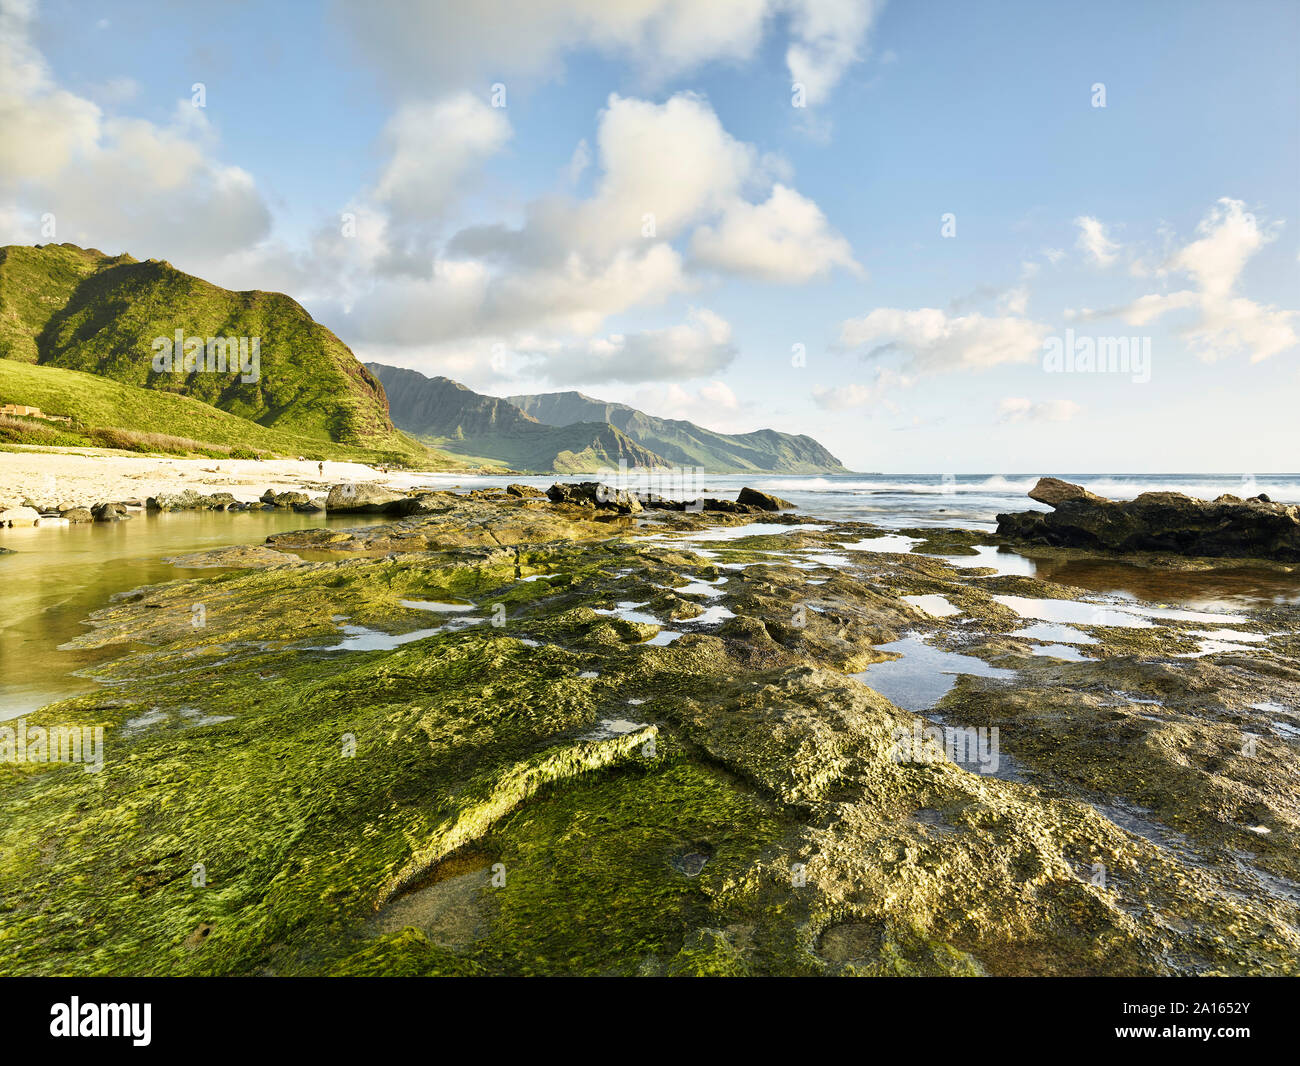 Scenic view of rocky shore at beach in Ka'ena Point State Park against sky Stock Photo